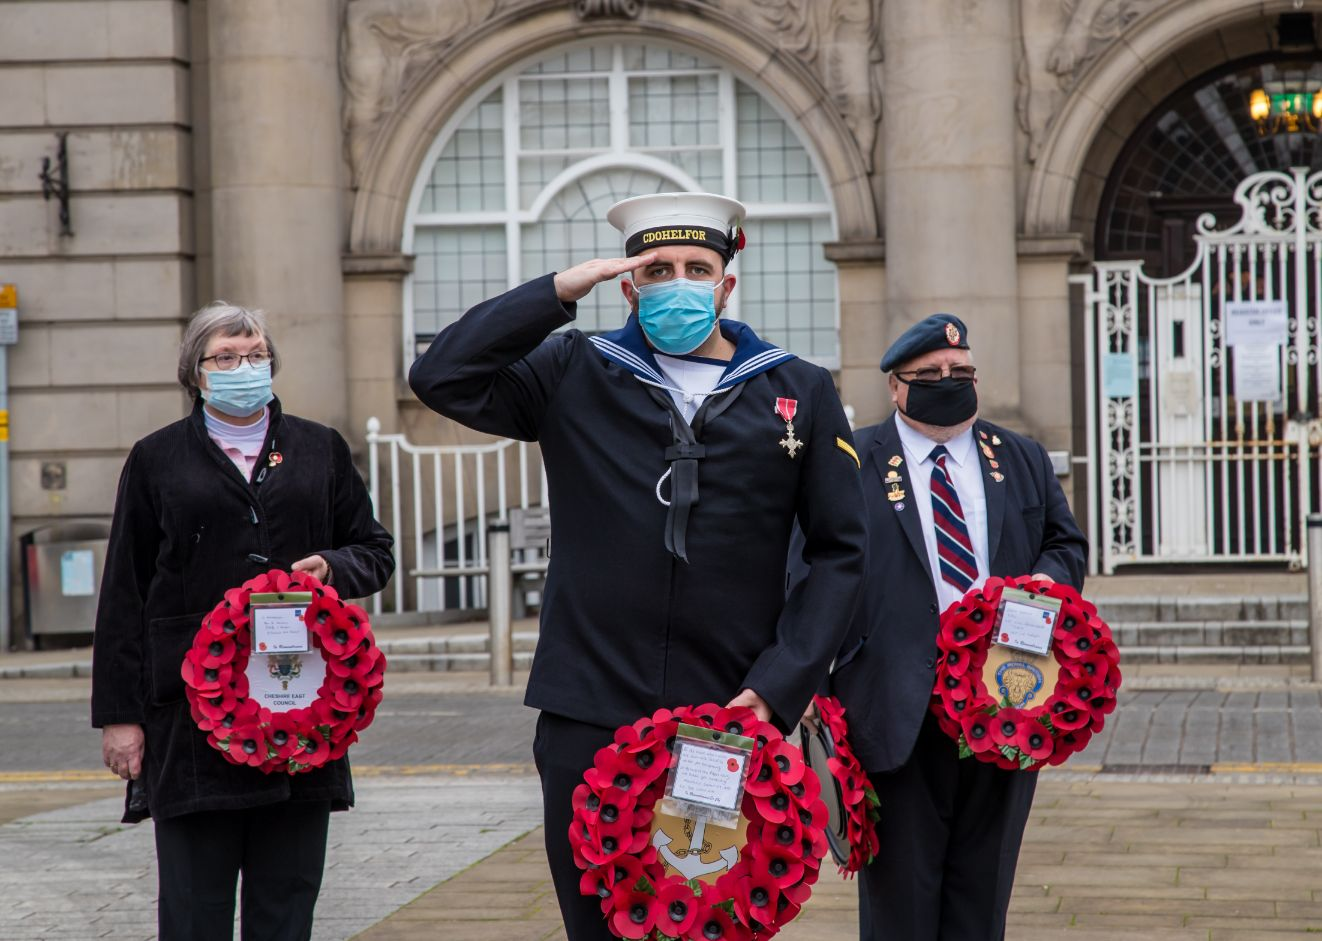 Crewe Remembrance Day 2020 12